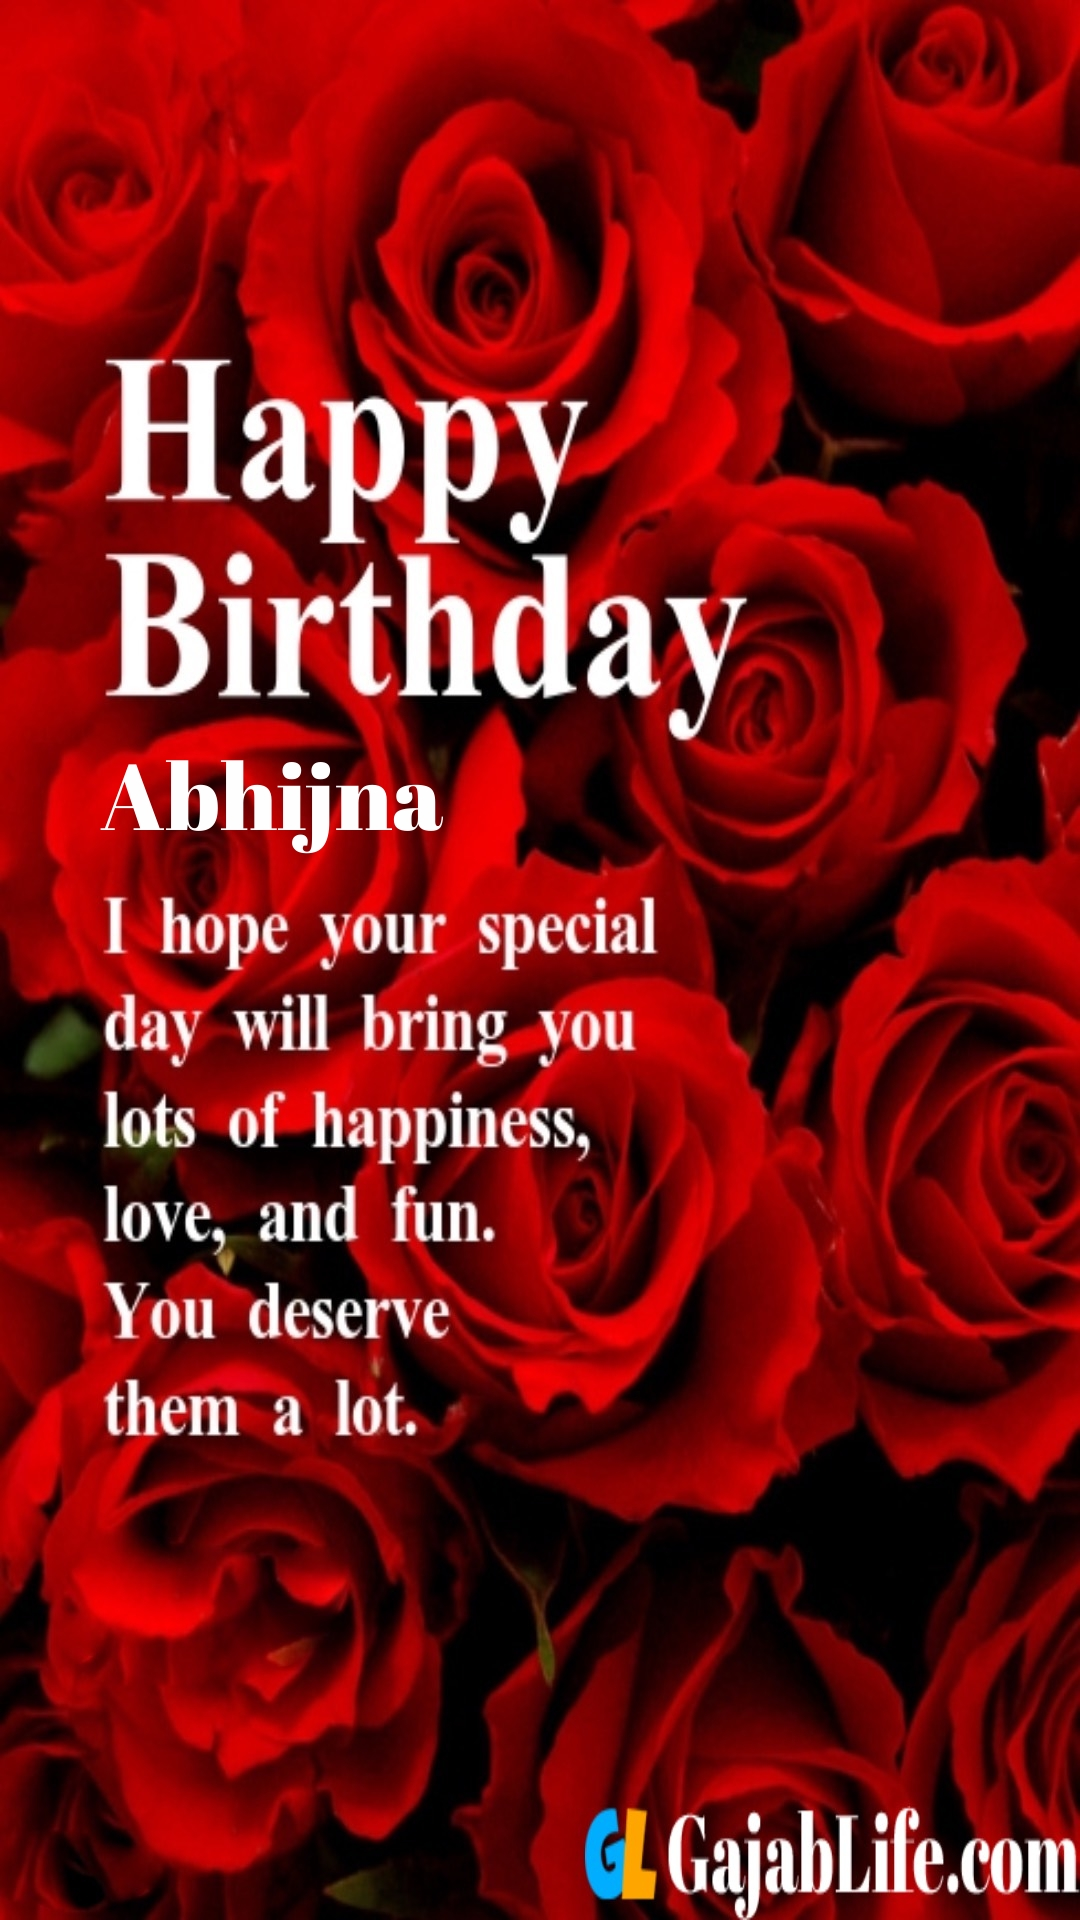 Abhijna birthday greeting card with rose & love